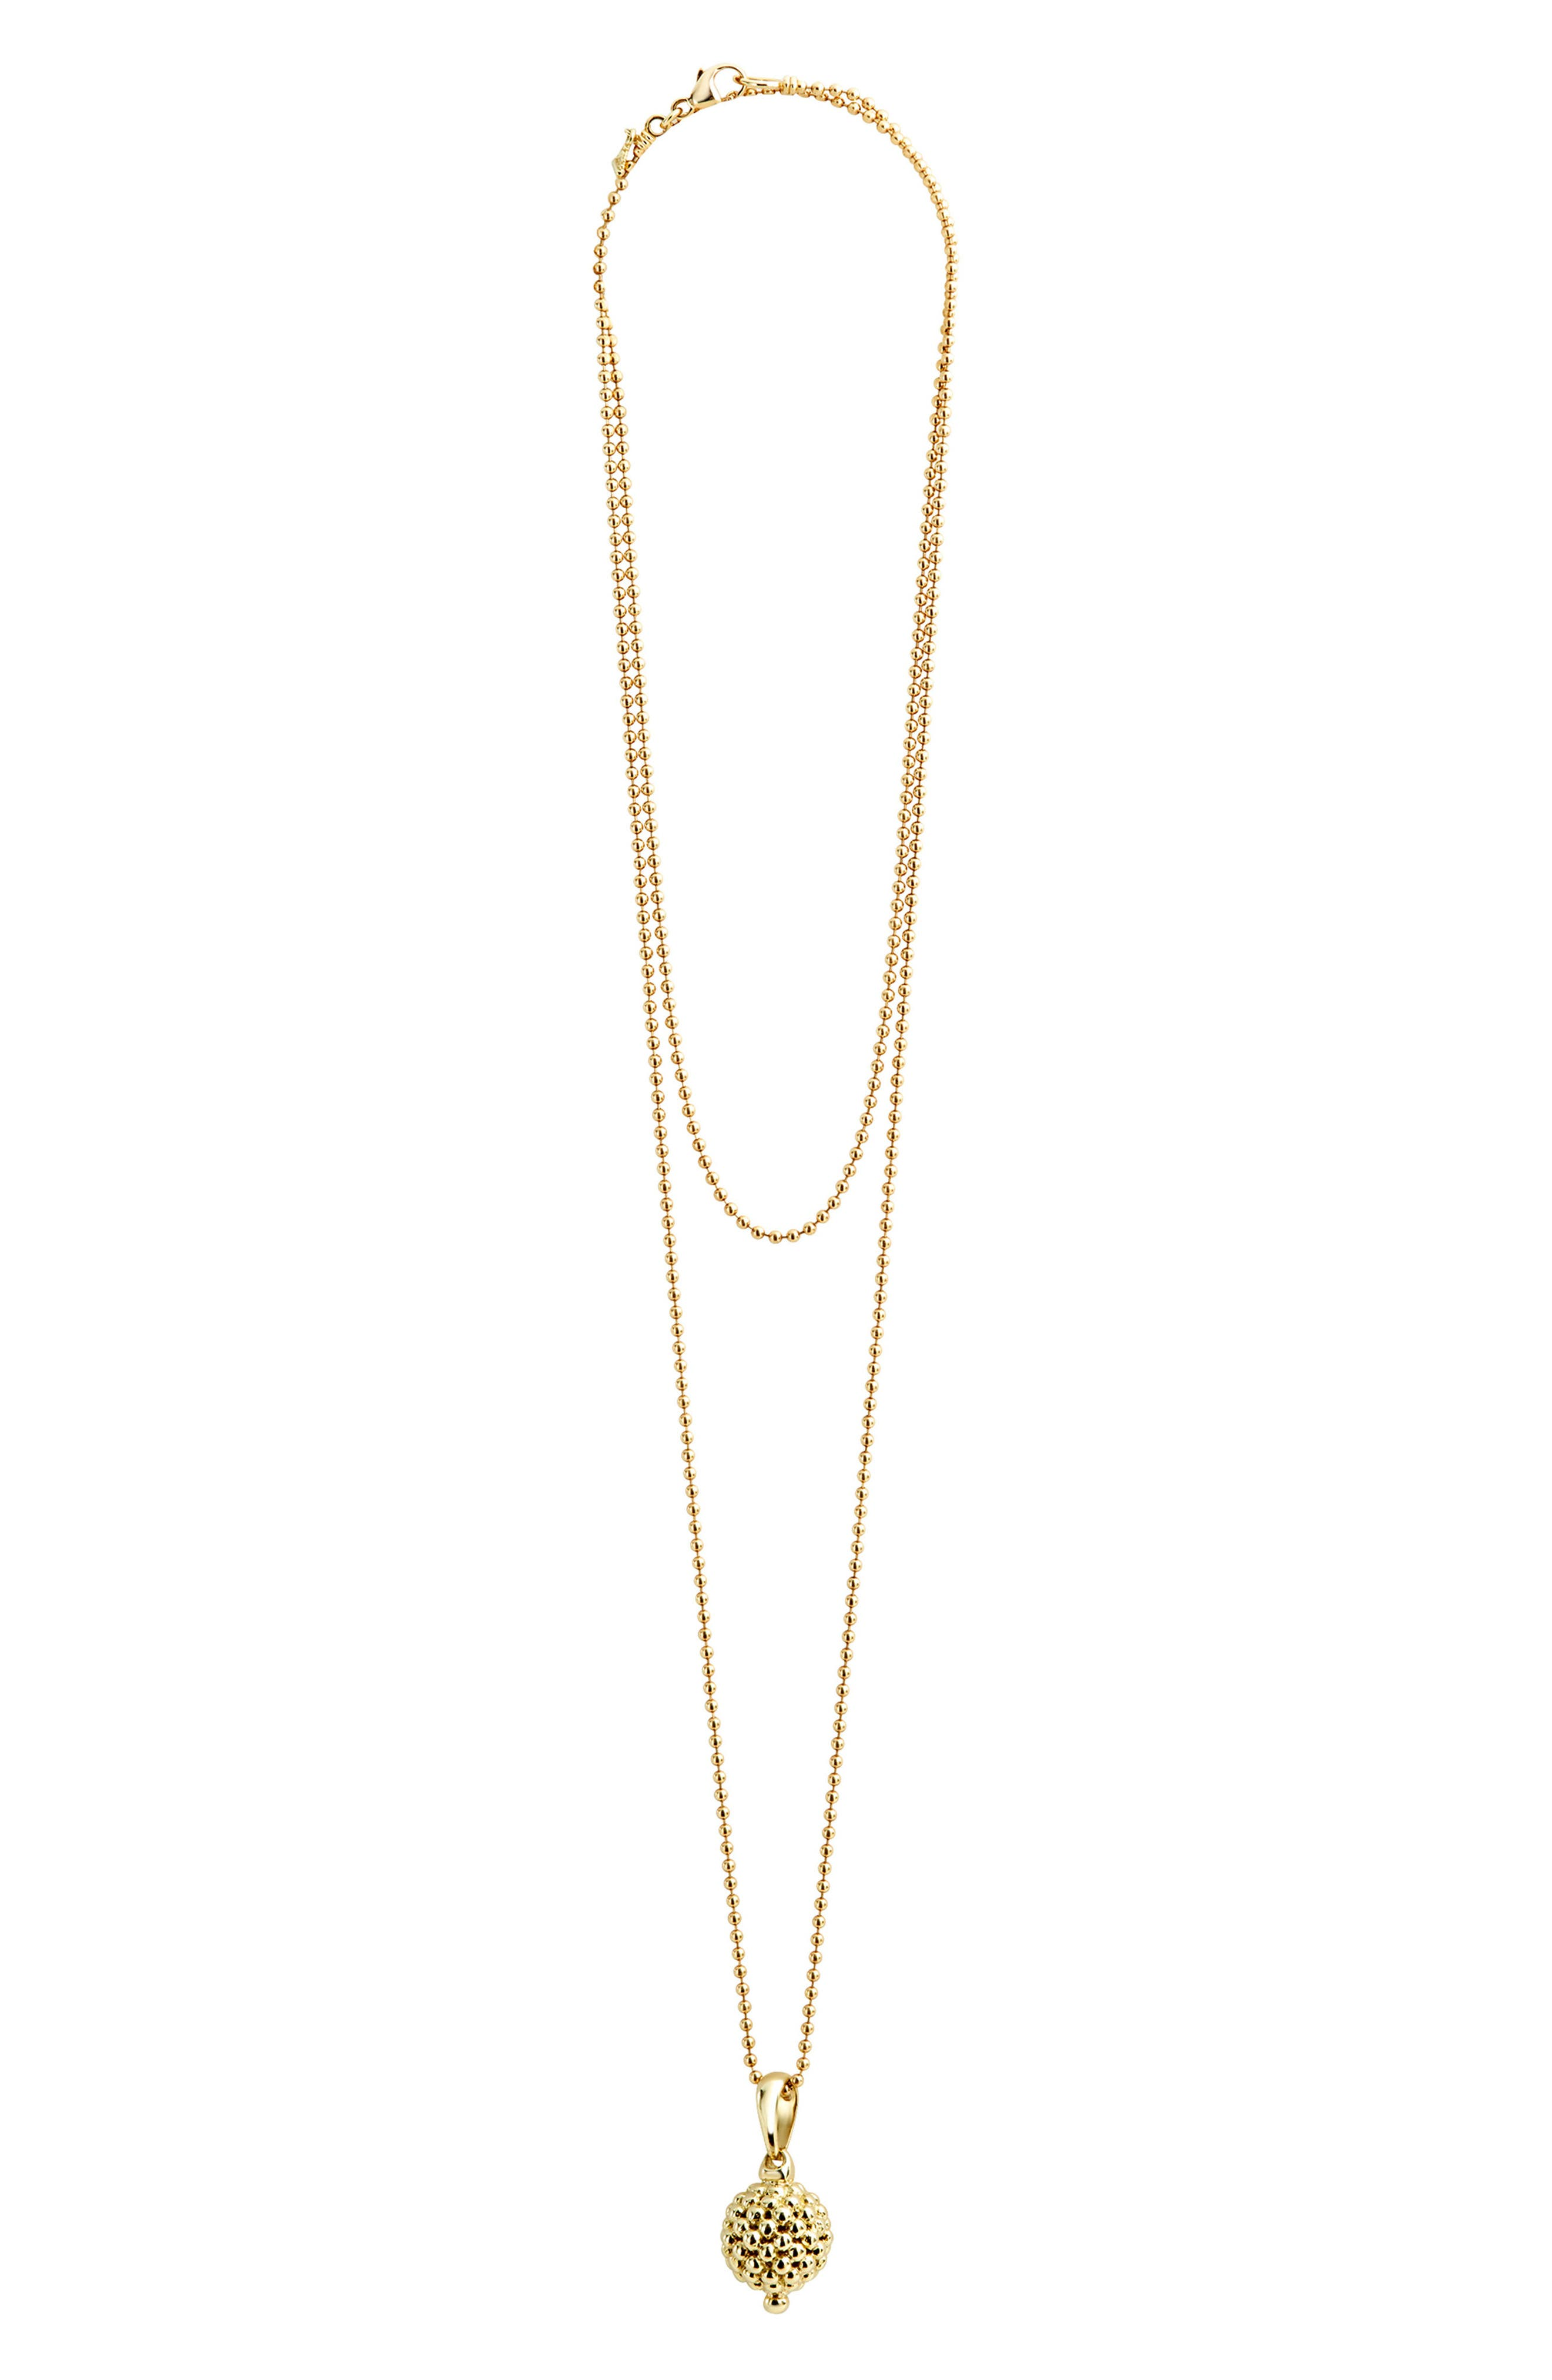 Caviar Gold Ball Pendant Necklace,                             Main thumbnail 1, color,                             Gold